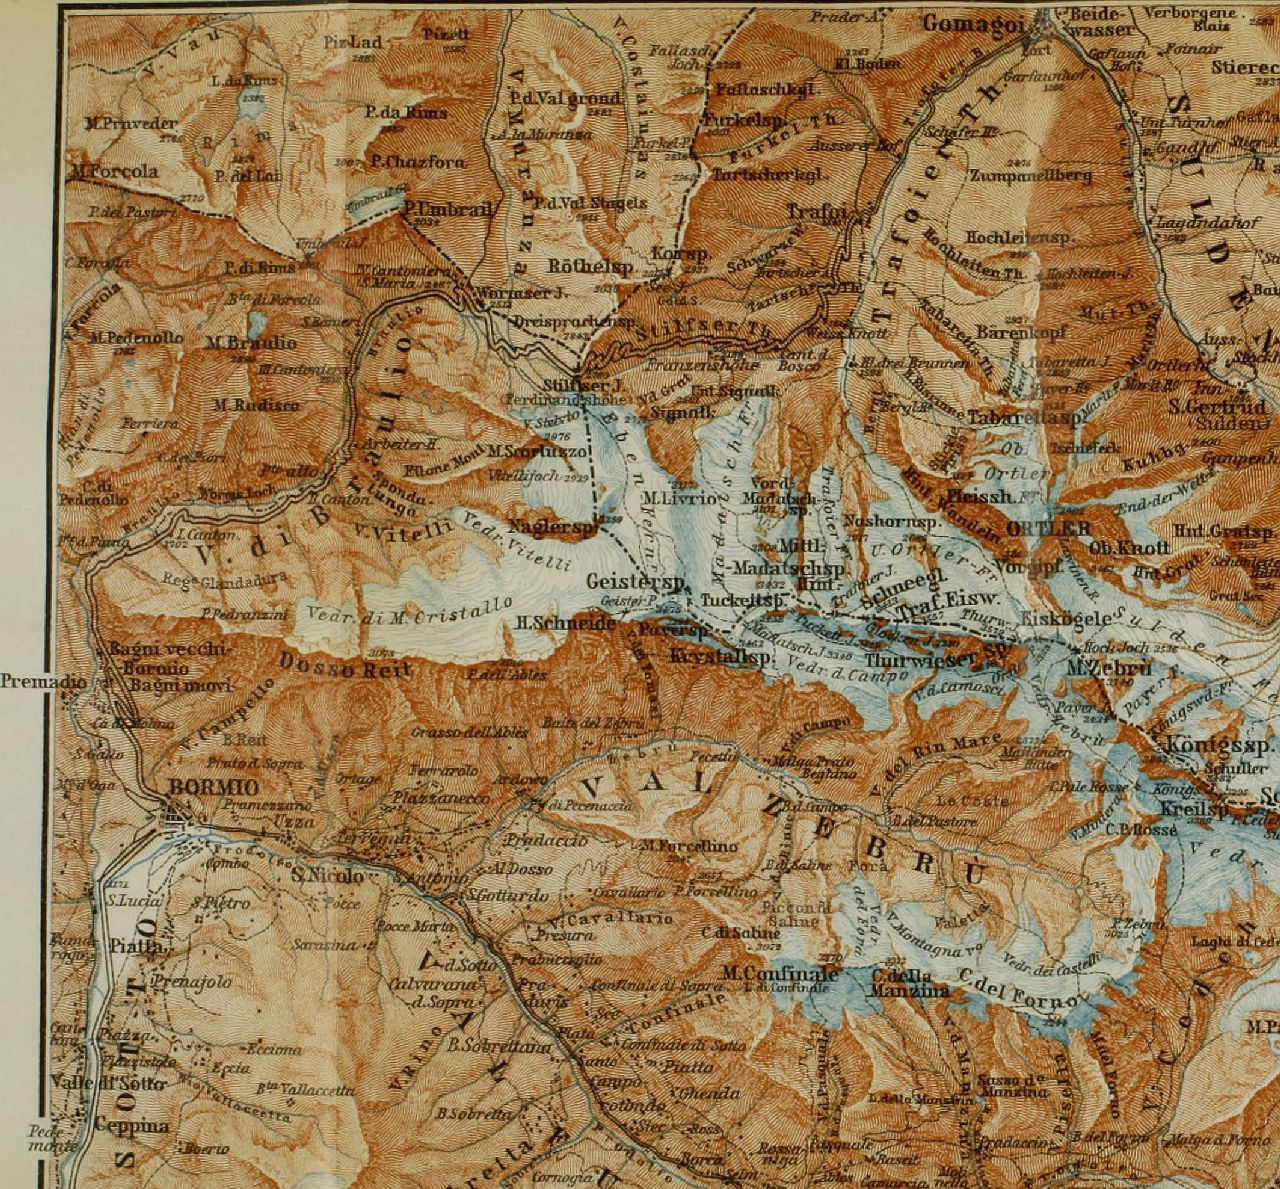 the eastern alps-map-book-internet archive-Image from page 391 of The eastern Alps including the Bavarian highlands, Tyrol, Salzkammergut, Sty 14596480629